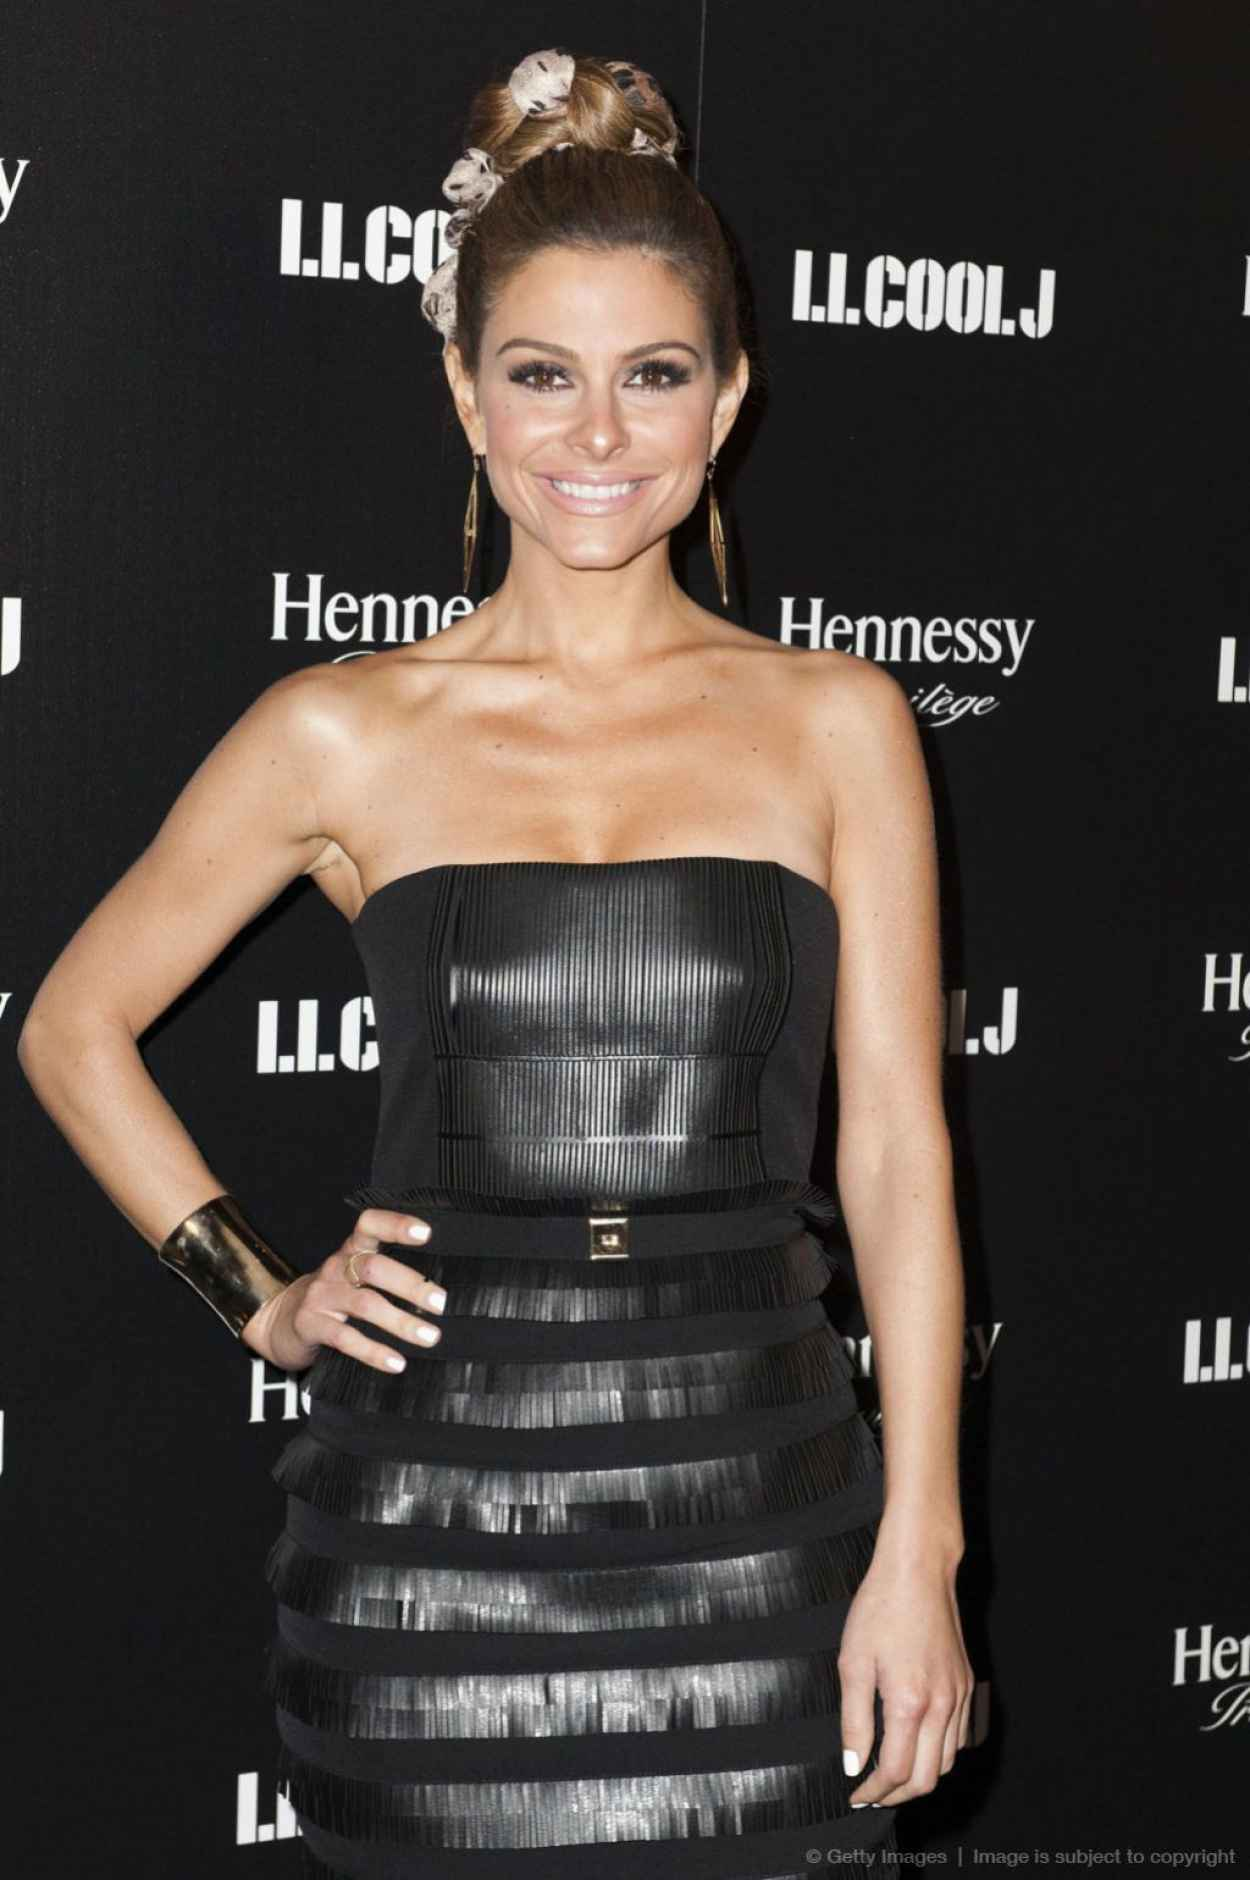 Maria Menounos - LL Cool J Hosted Pre-Grammy Awards Dinner - January 2015-1